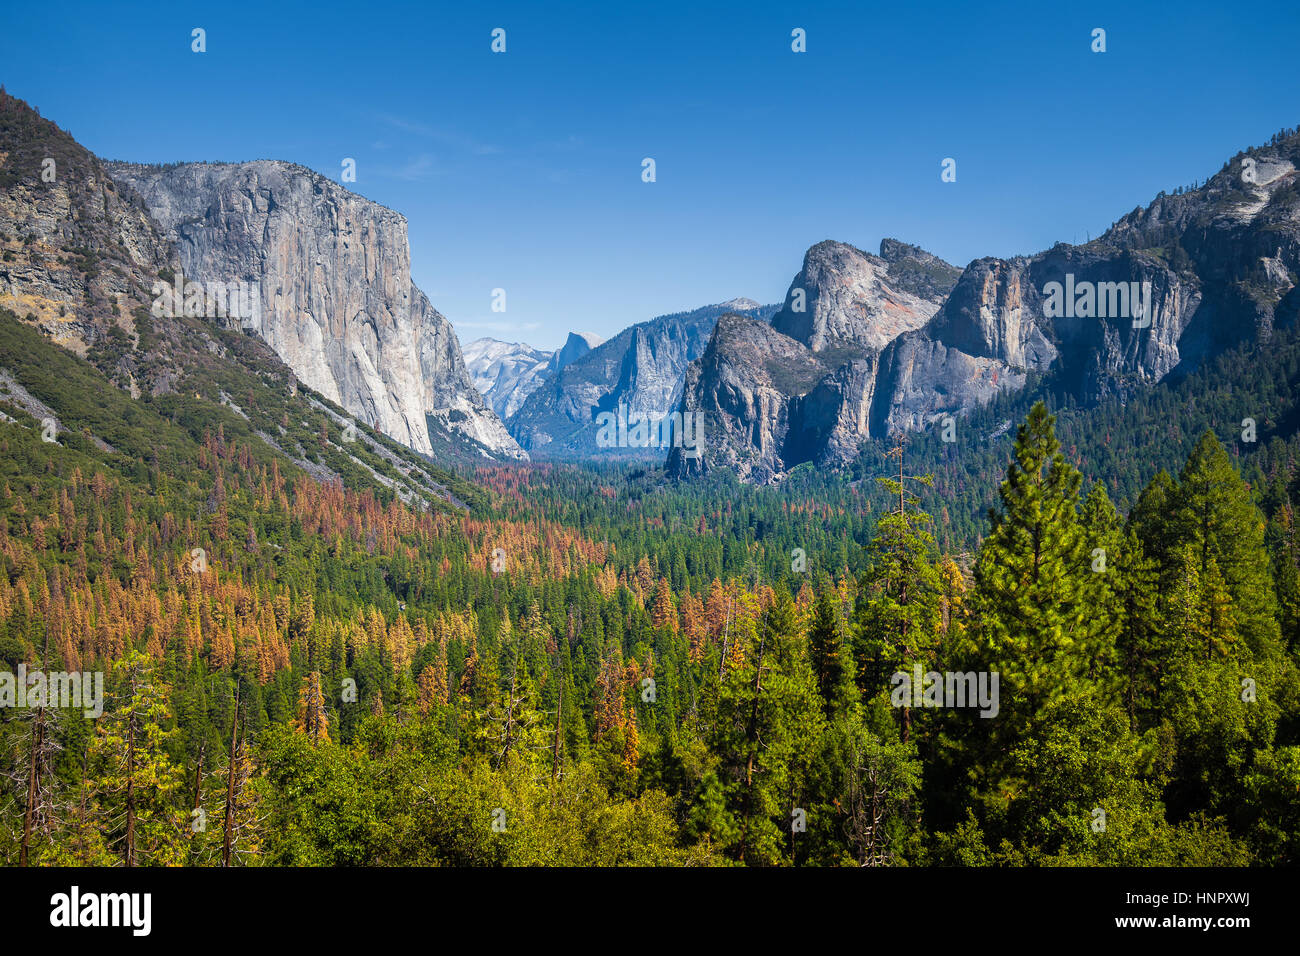 Classic Tunnel View of scenic Yosemite Valley with famous El Capitan and Half Dome rock climbing summits on a beautiful - Stock Image